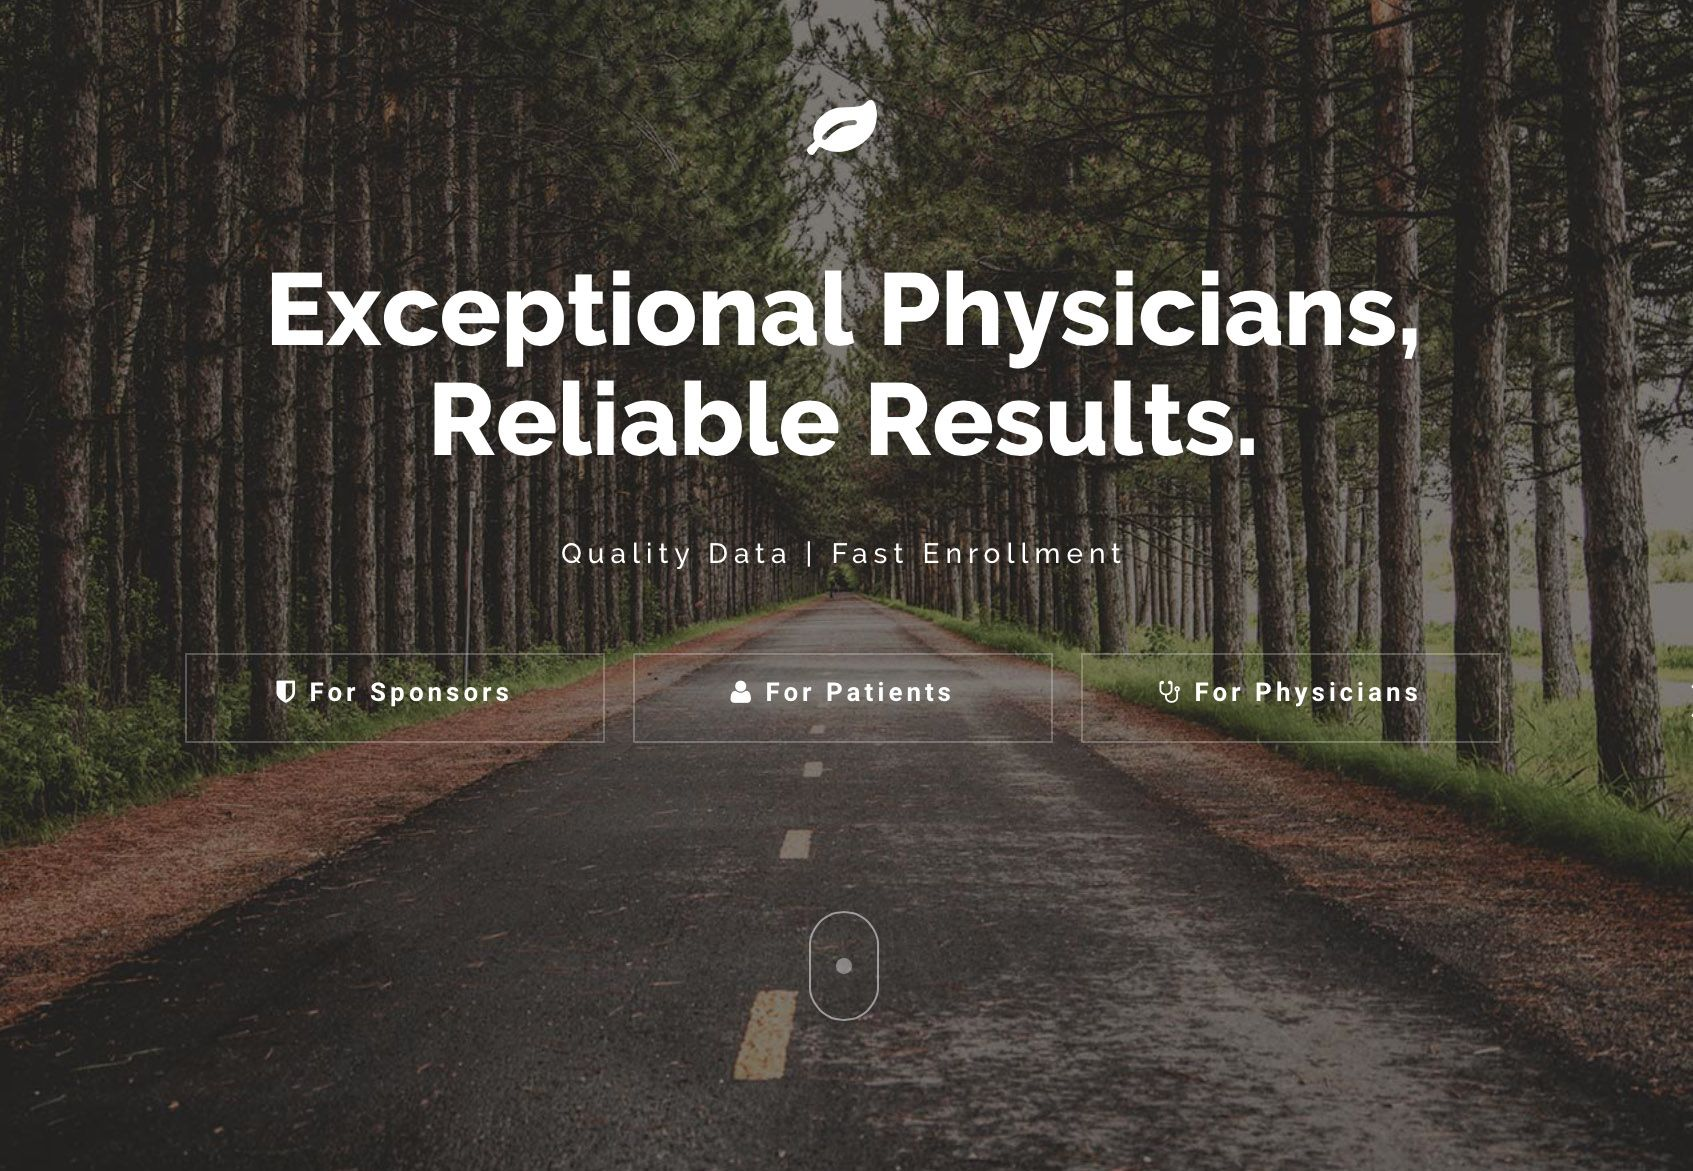 Become part of the elite group of physicians who qualify to conduct research